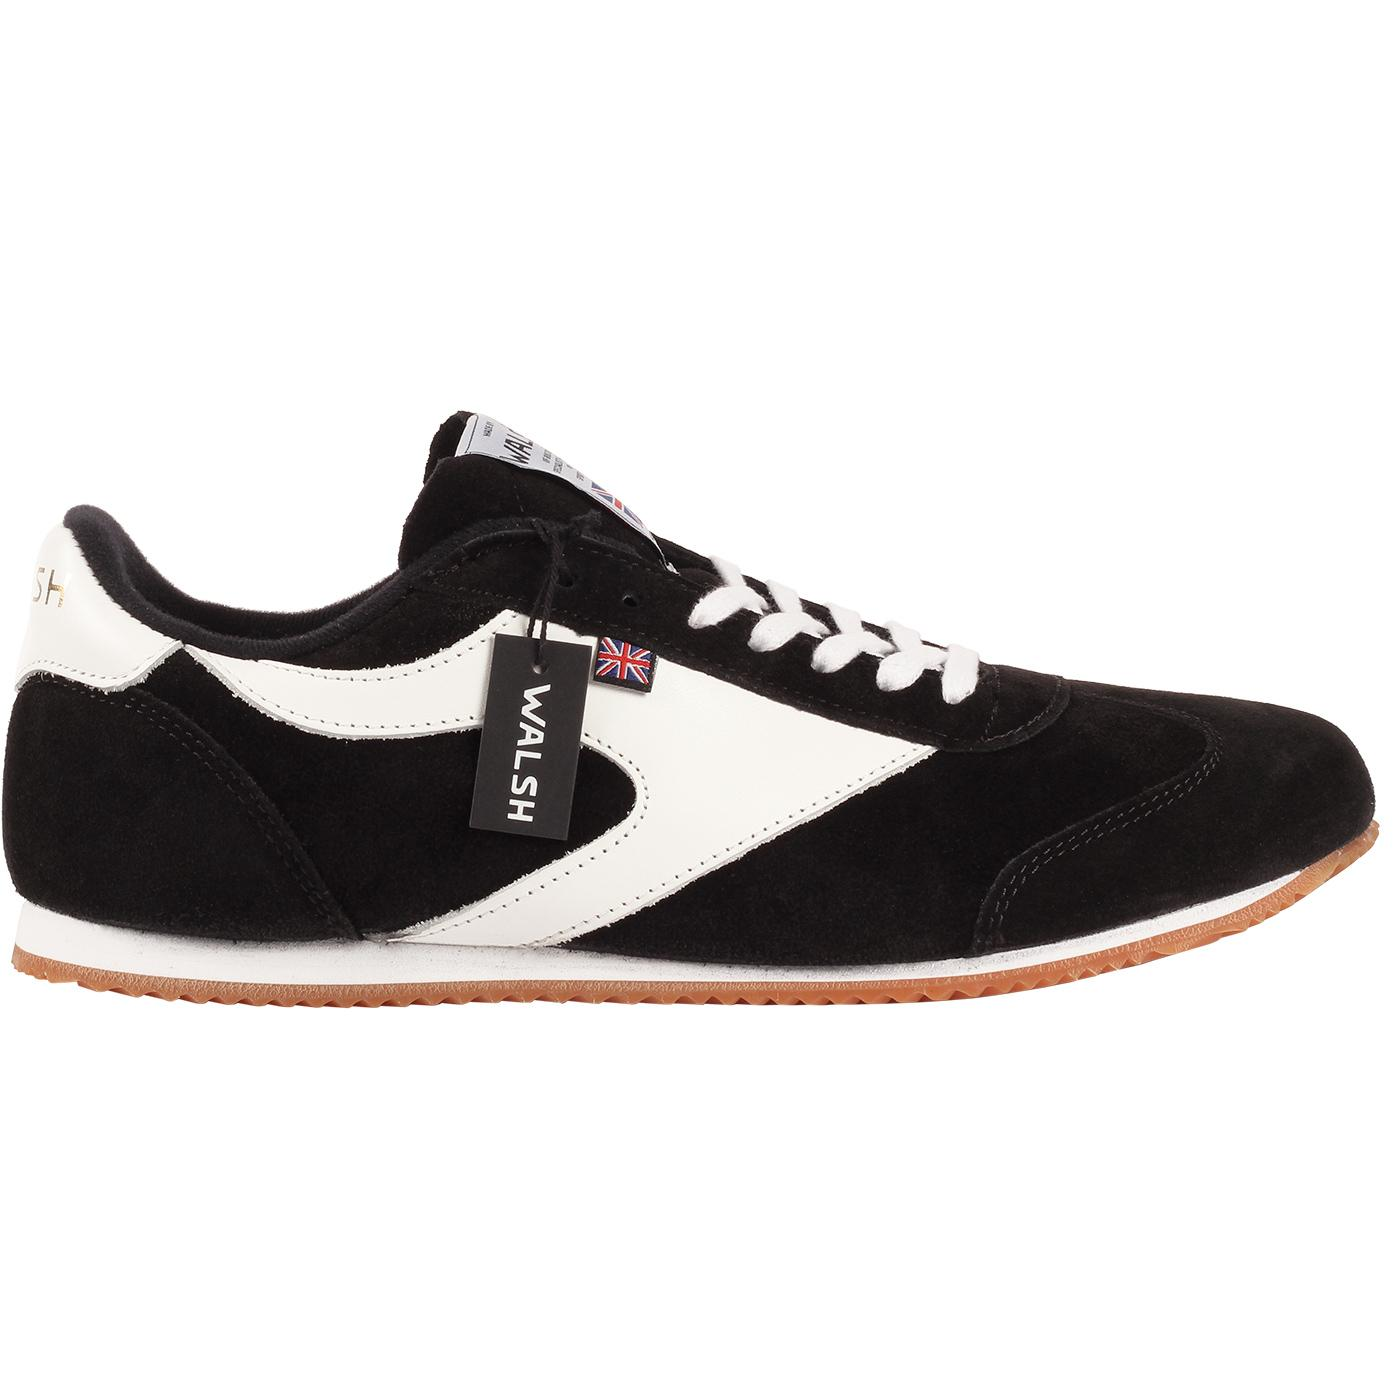 Attack WALSH Made in England Retro Trainers BLACK